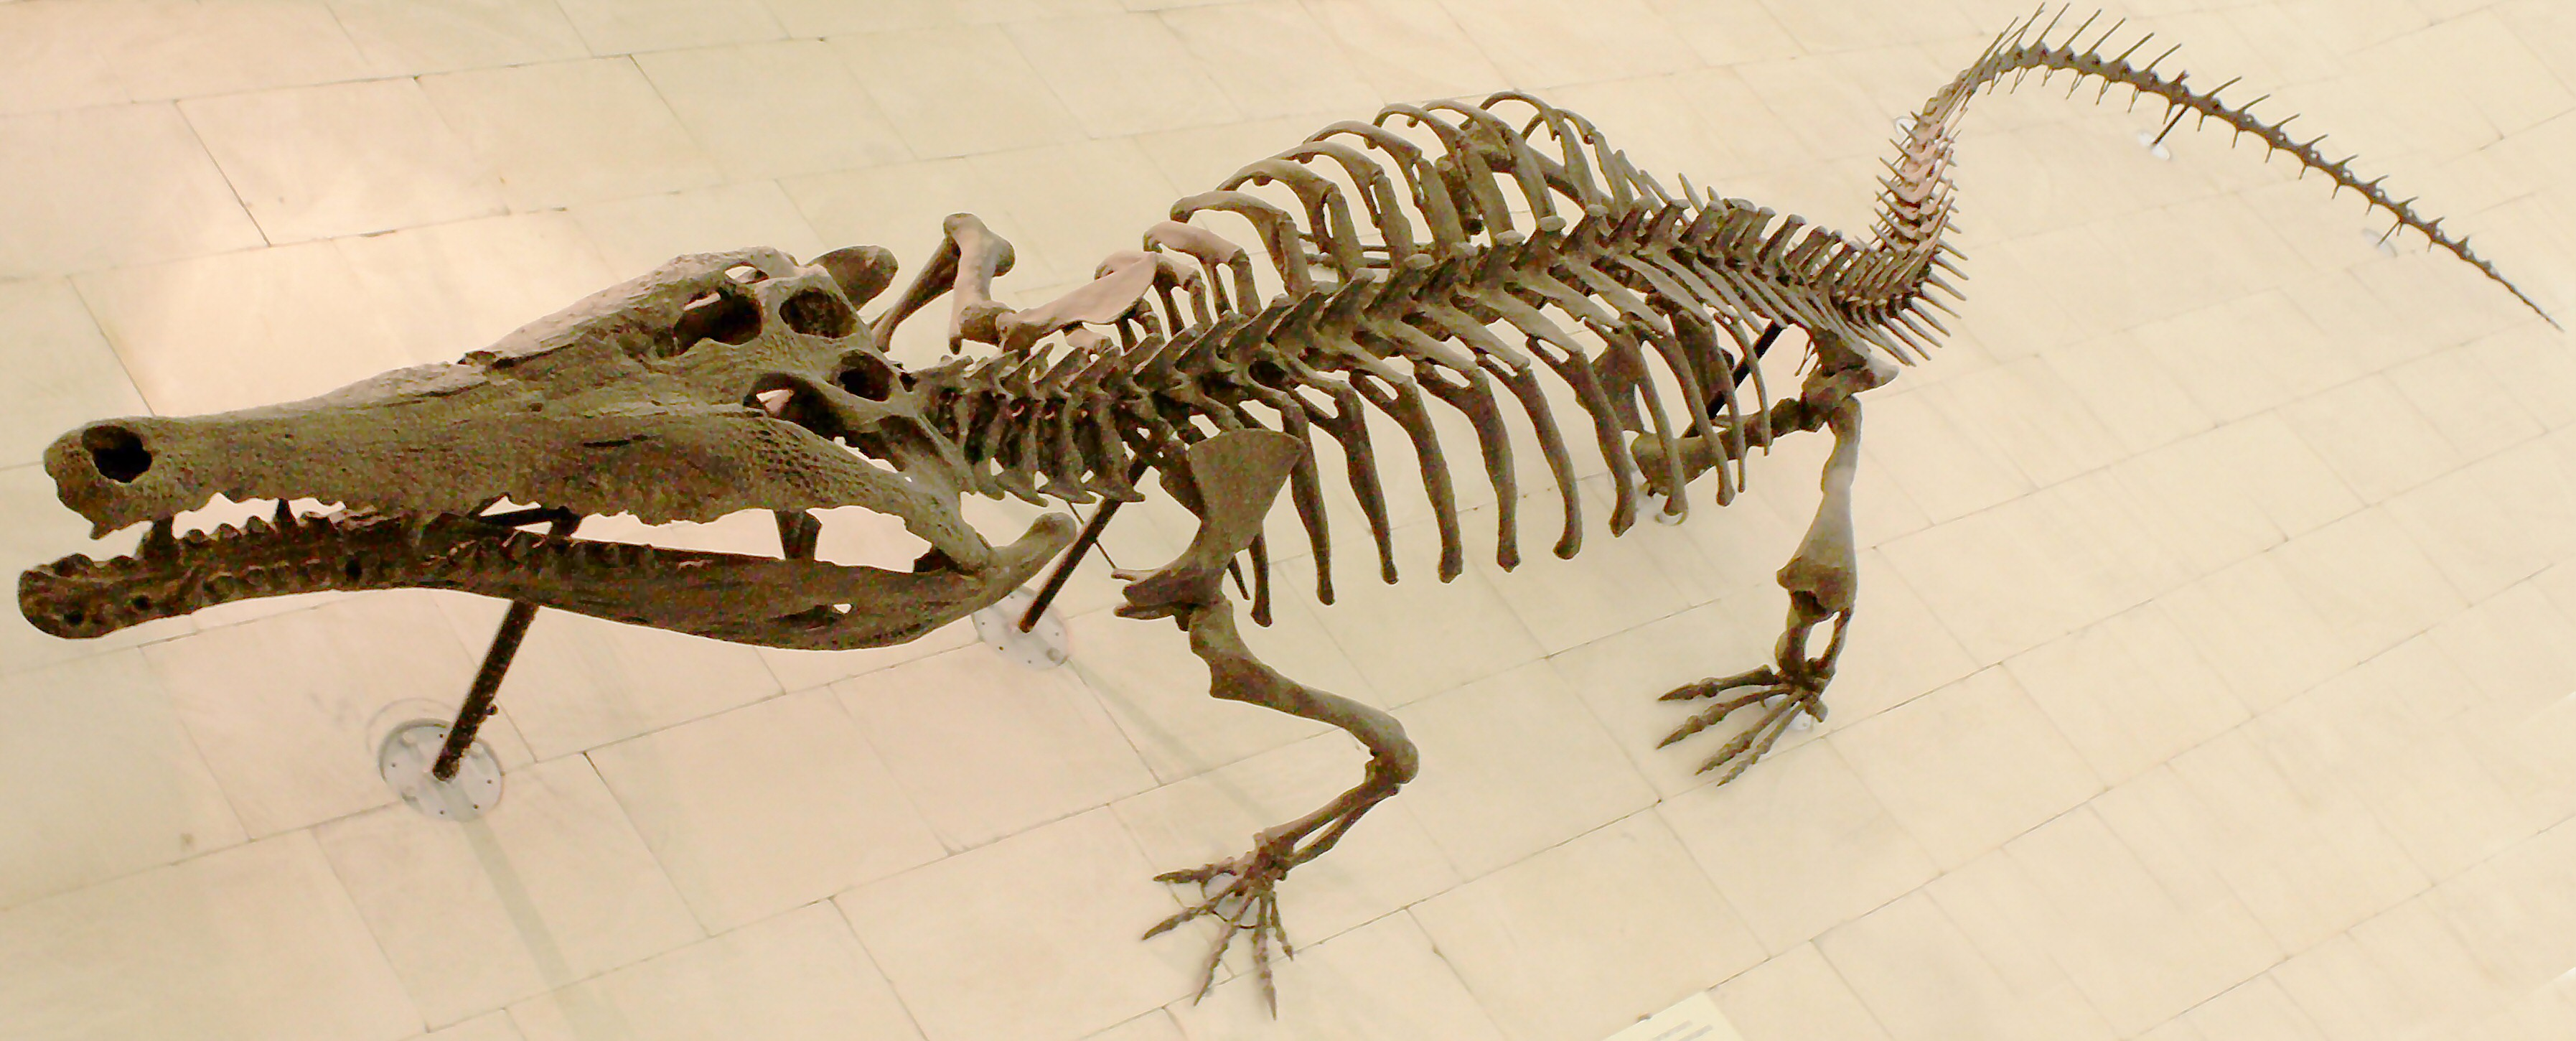 File:Crocodile skeleton.jpg